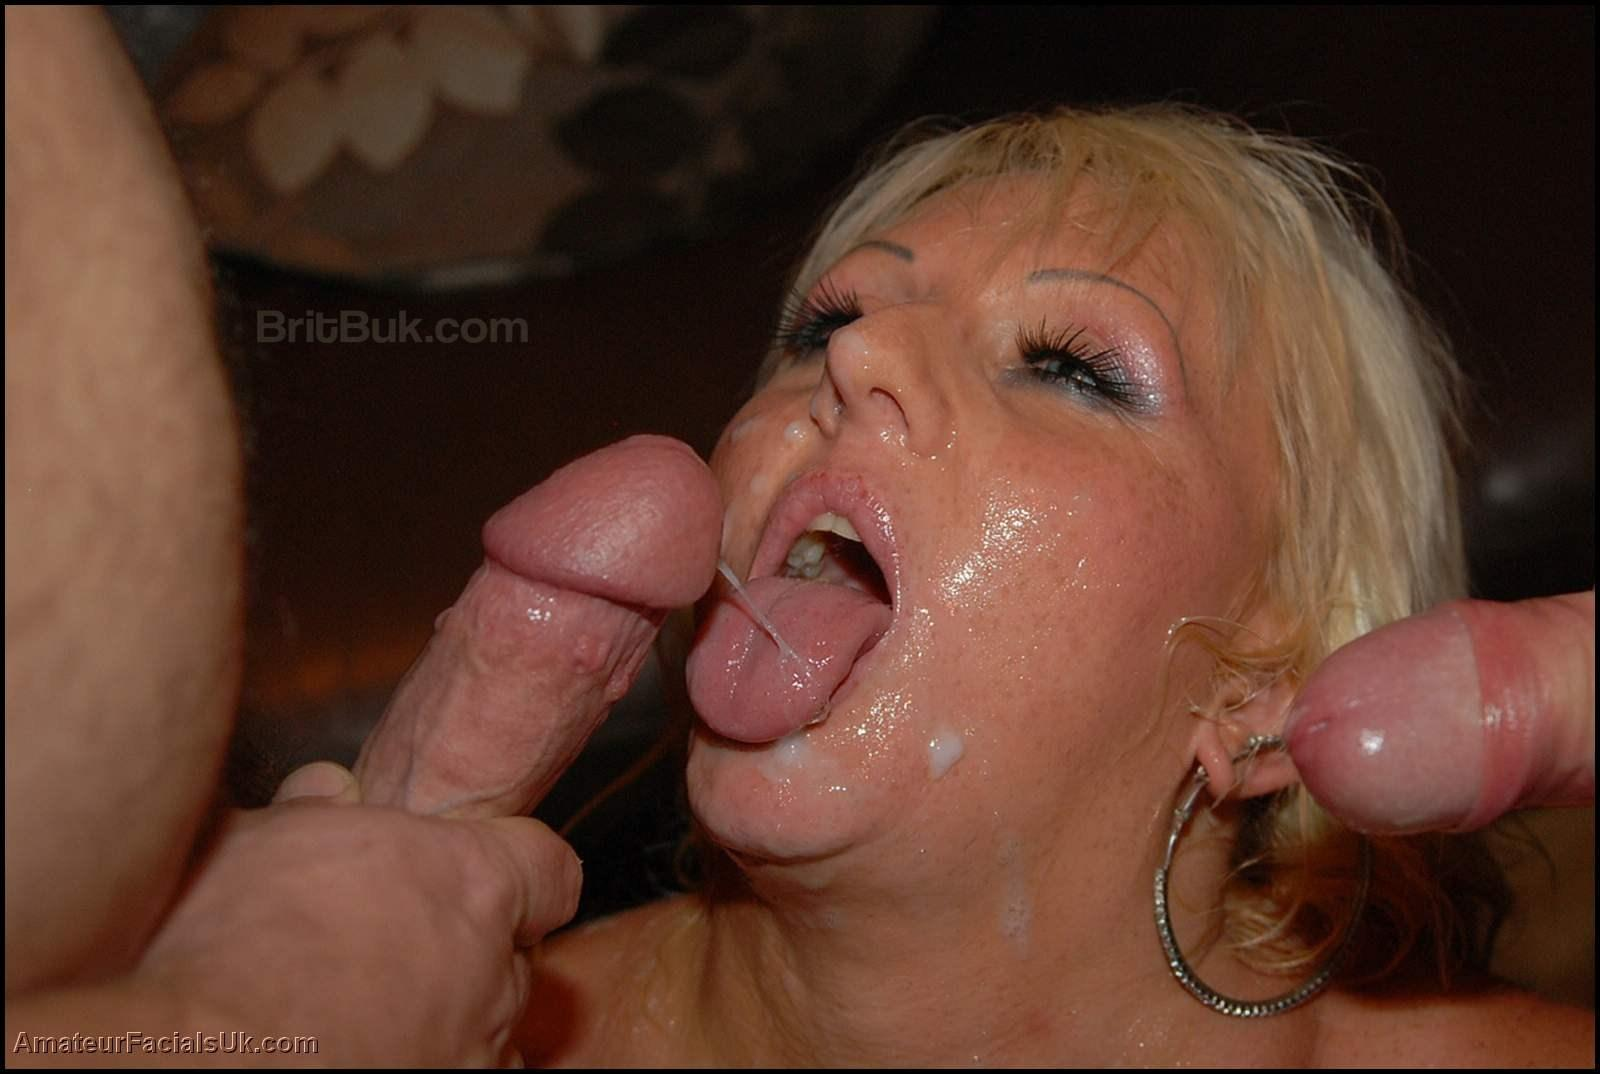 british milf capricce taking creamy facials in an amazing bukkake party